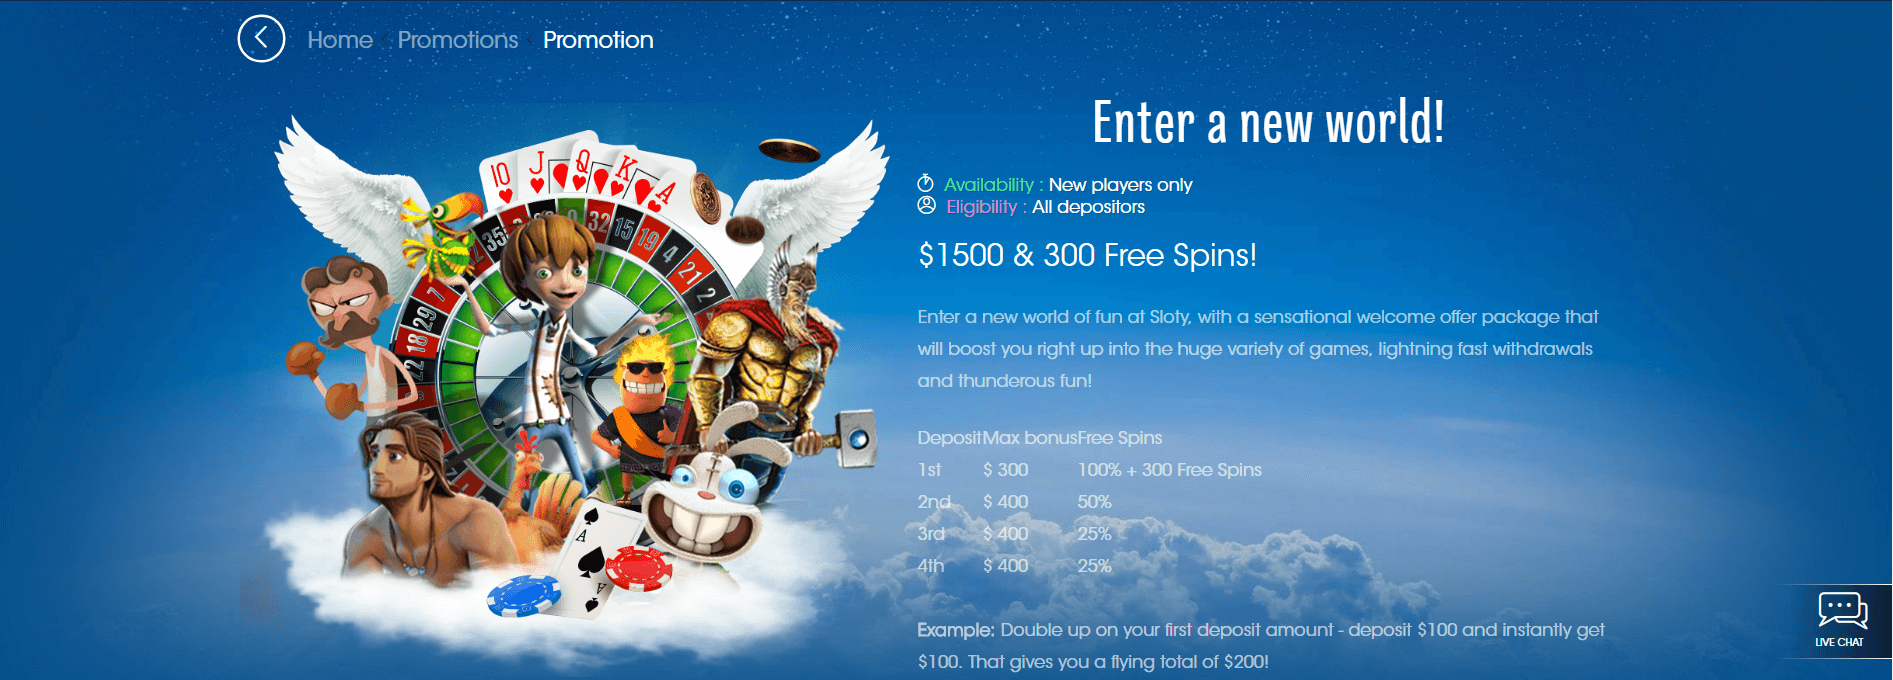 An image of the Sloty casino promotions page